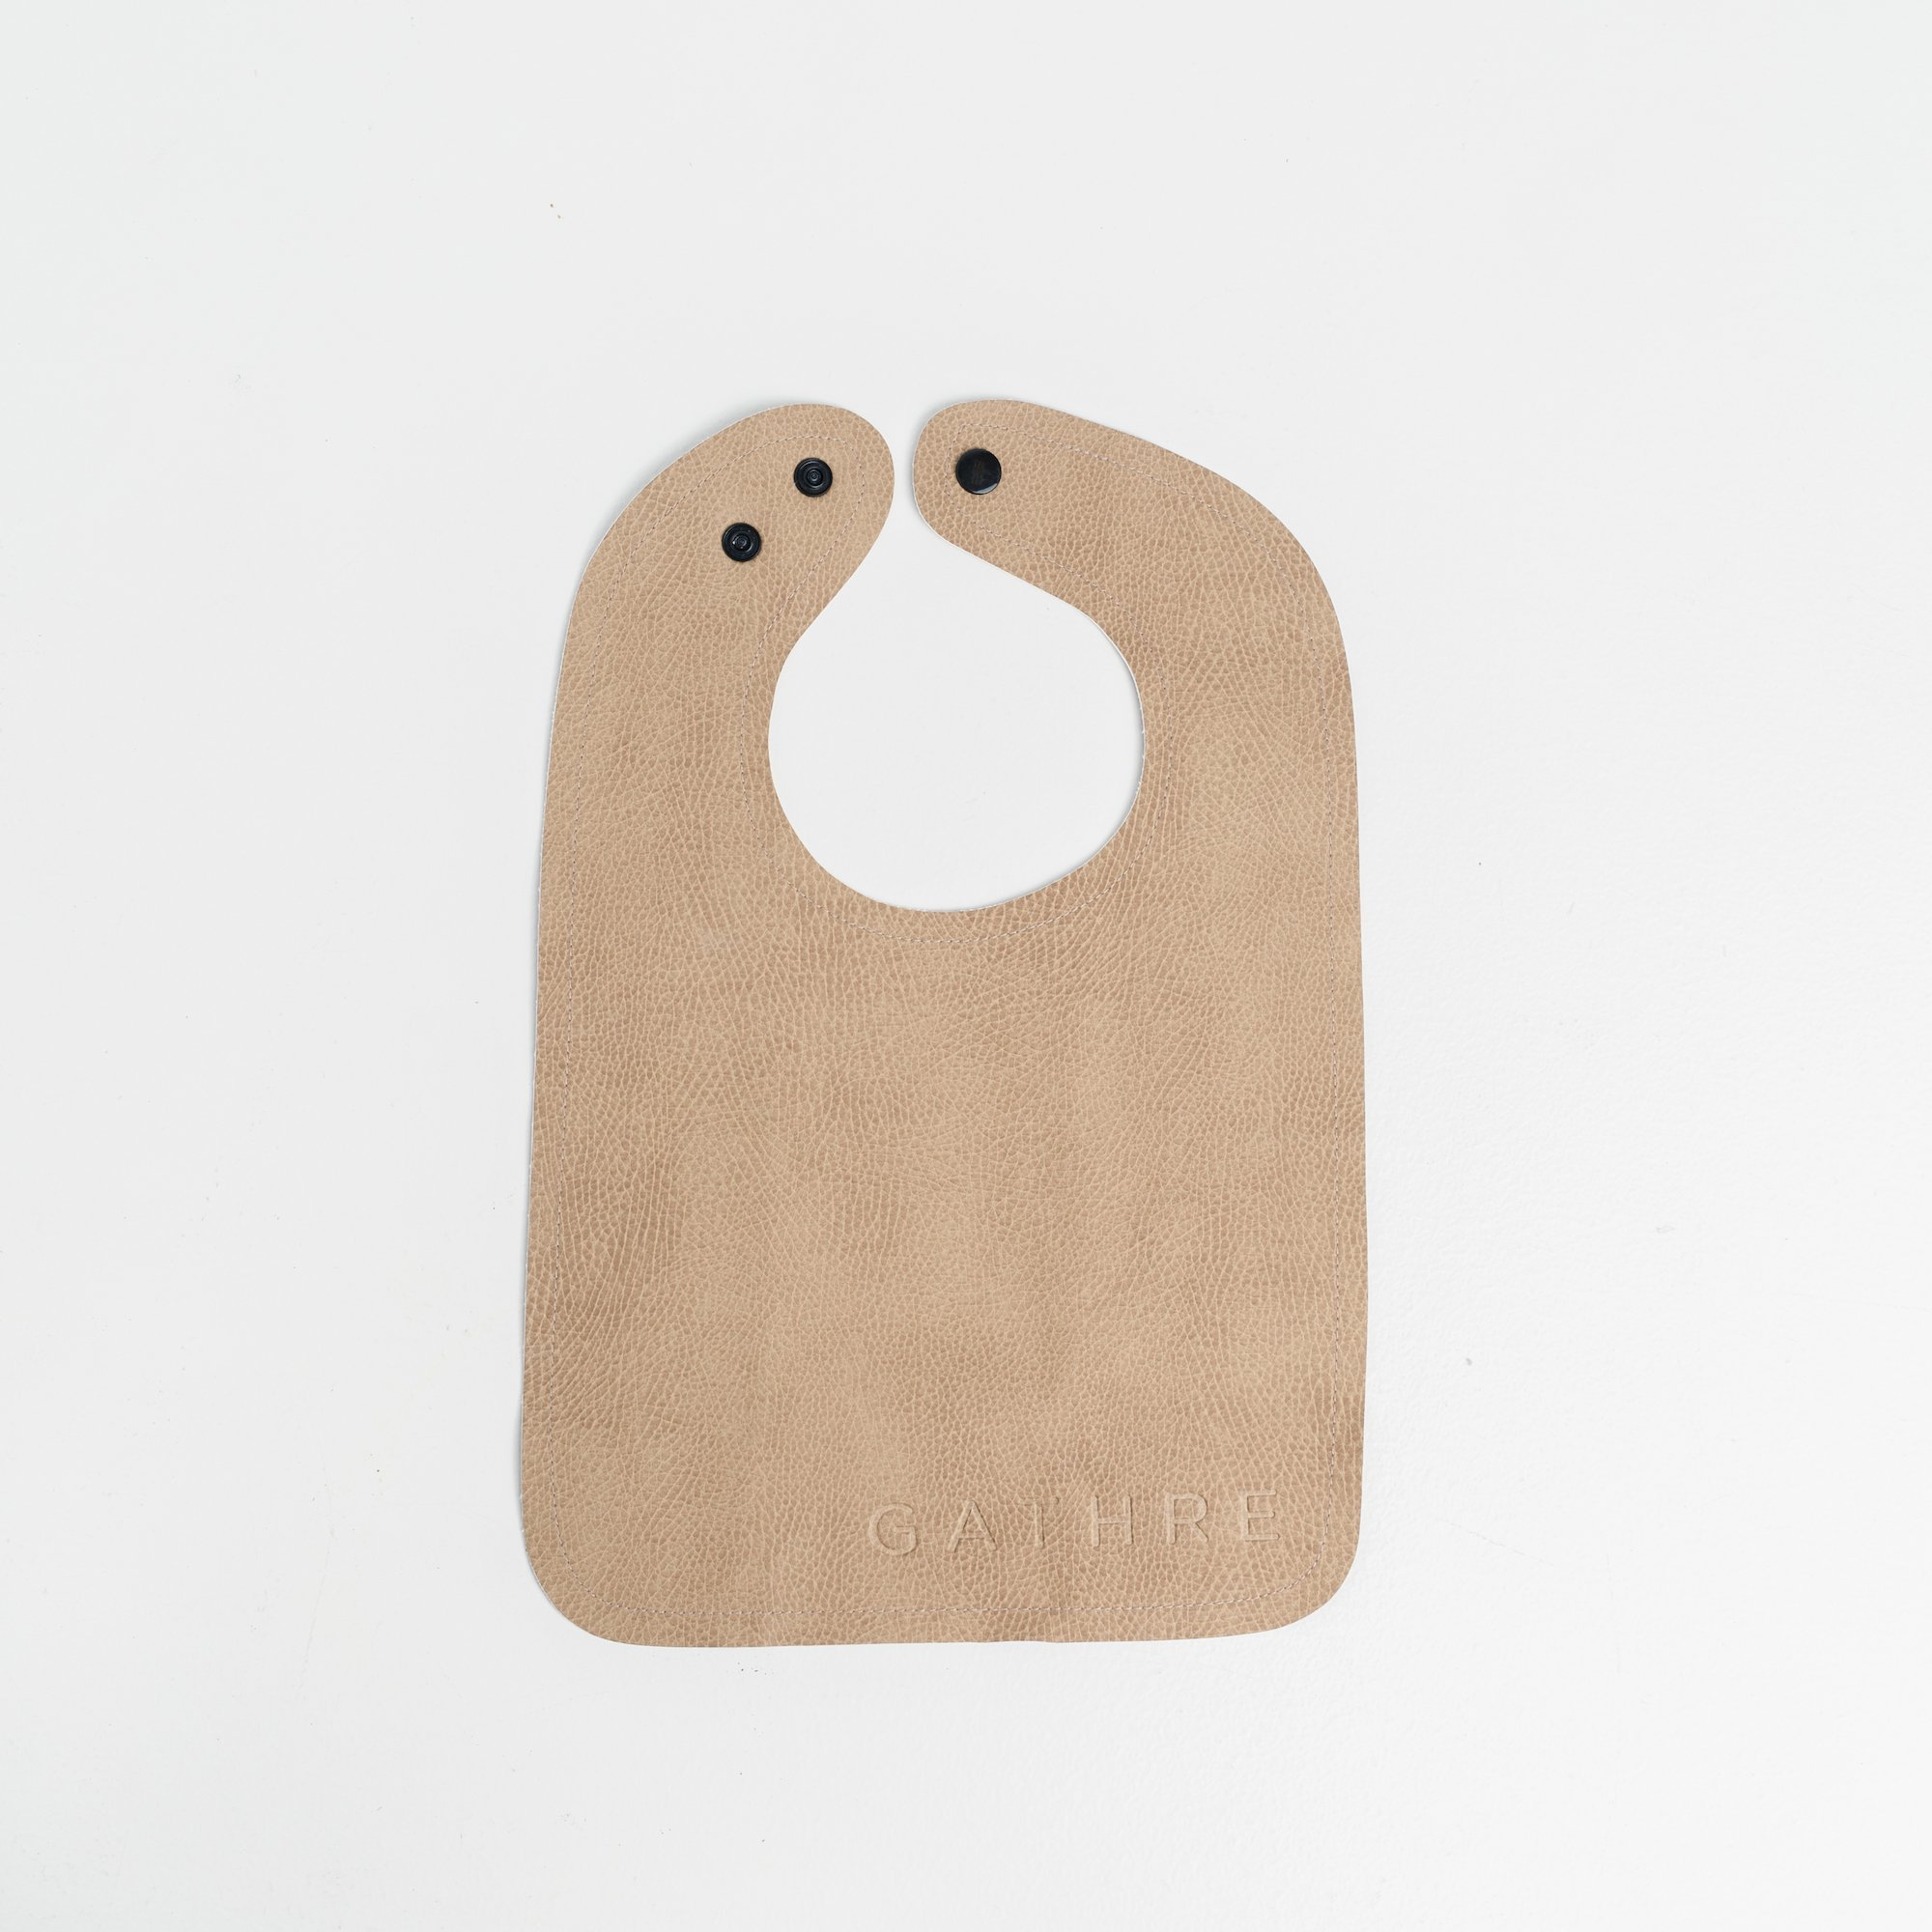 Gathre Toddler Bib Bib Regular price$14.00 Pretty meets practical with our wipeable vegan leather bibs